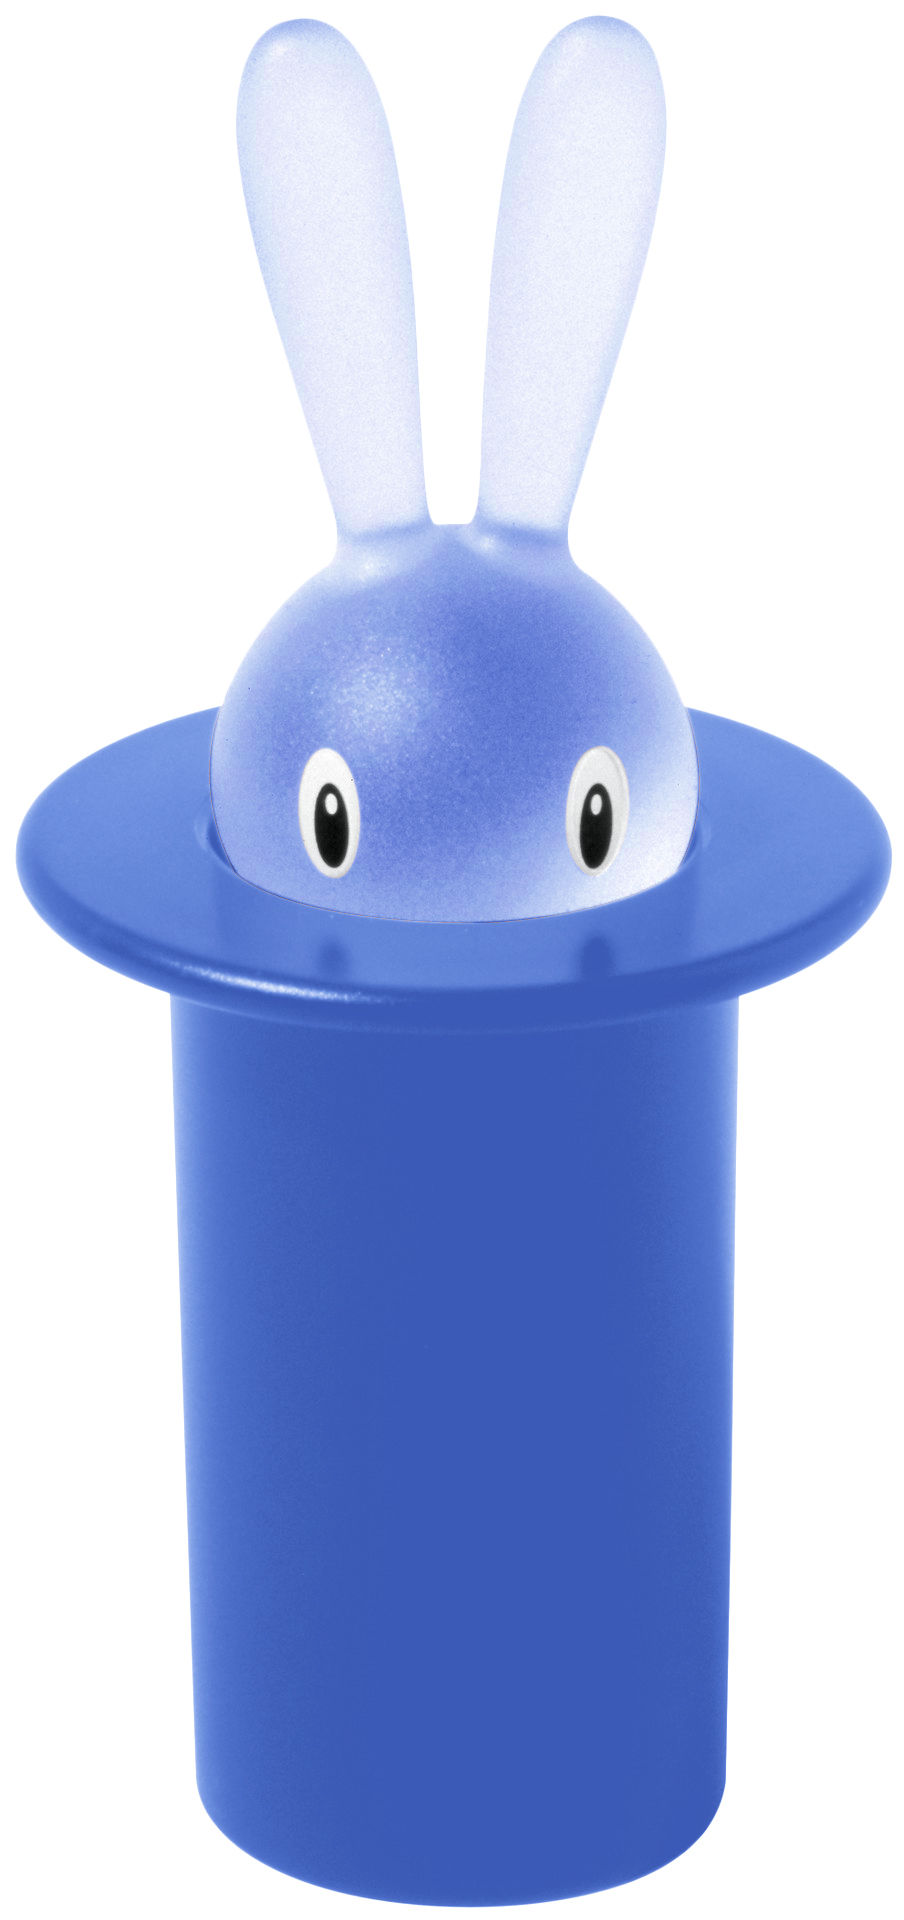 Kitchenware - Fun in the kitchen - Magic Bunny Toothpick holder by A di Alessi - Blue - Plastic material